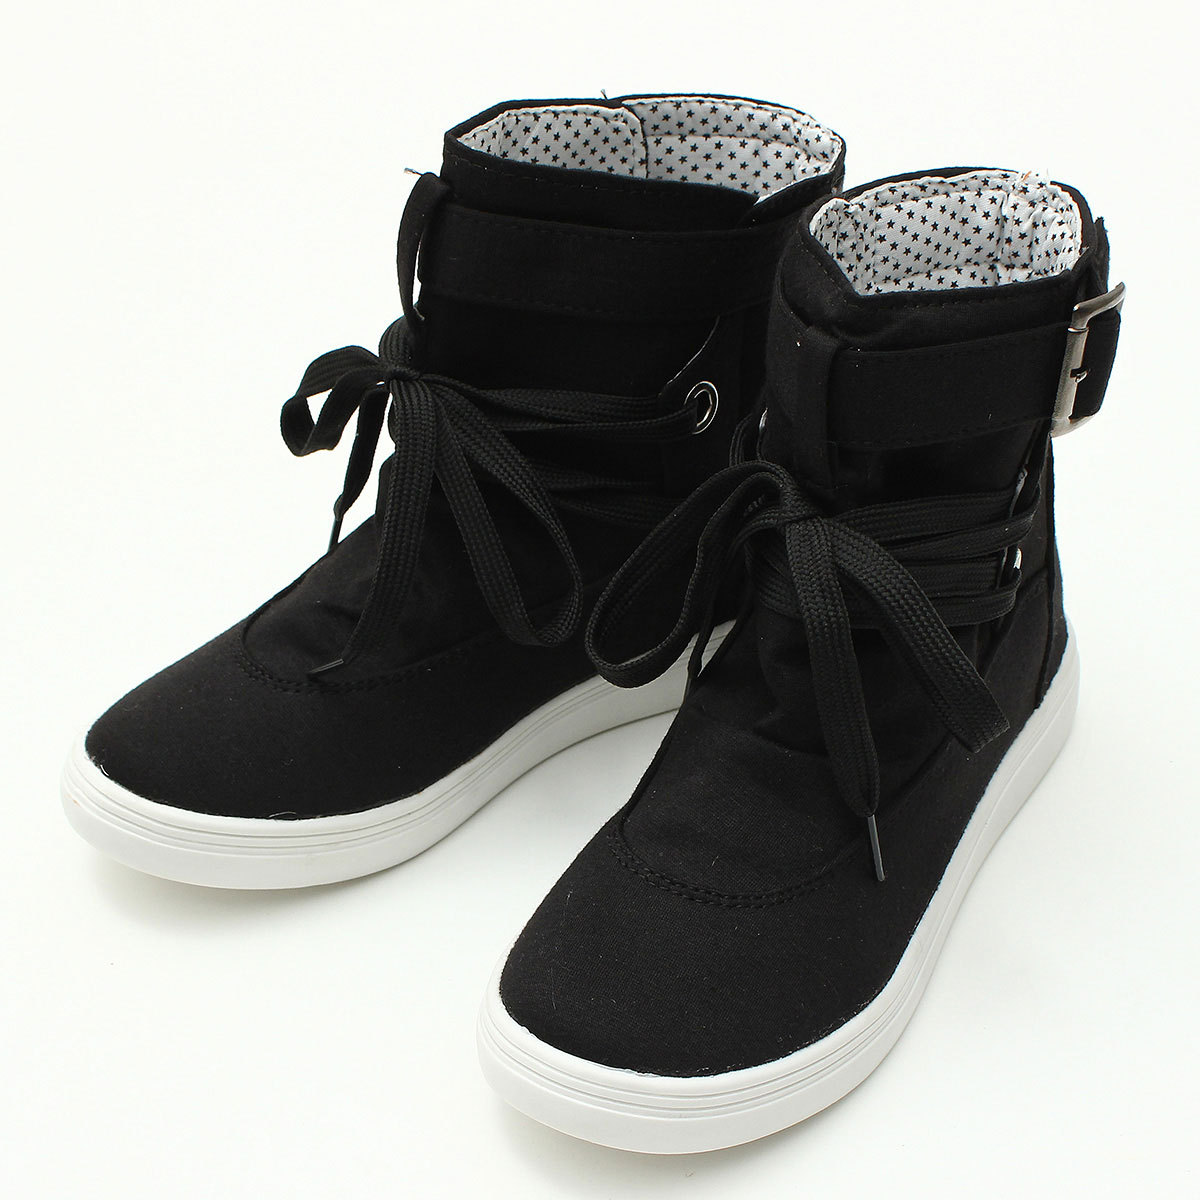 Women Canvas Sneaker Buckle Strap Lace Up Hiking Flats High Top Sports Shoes 4-6